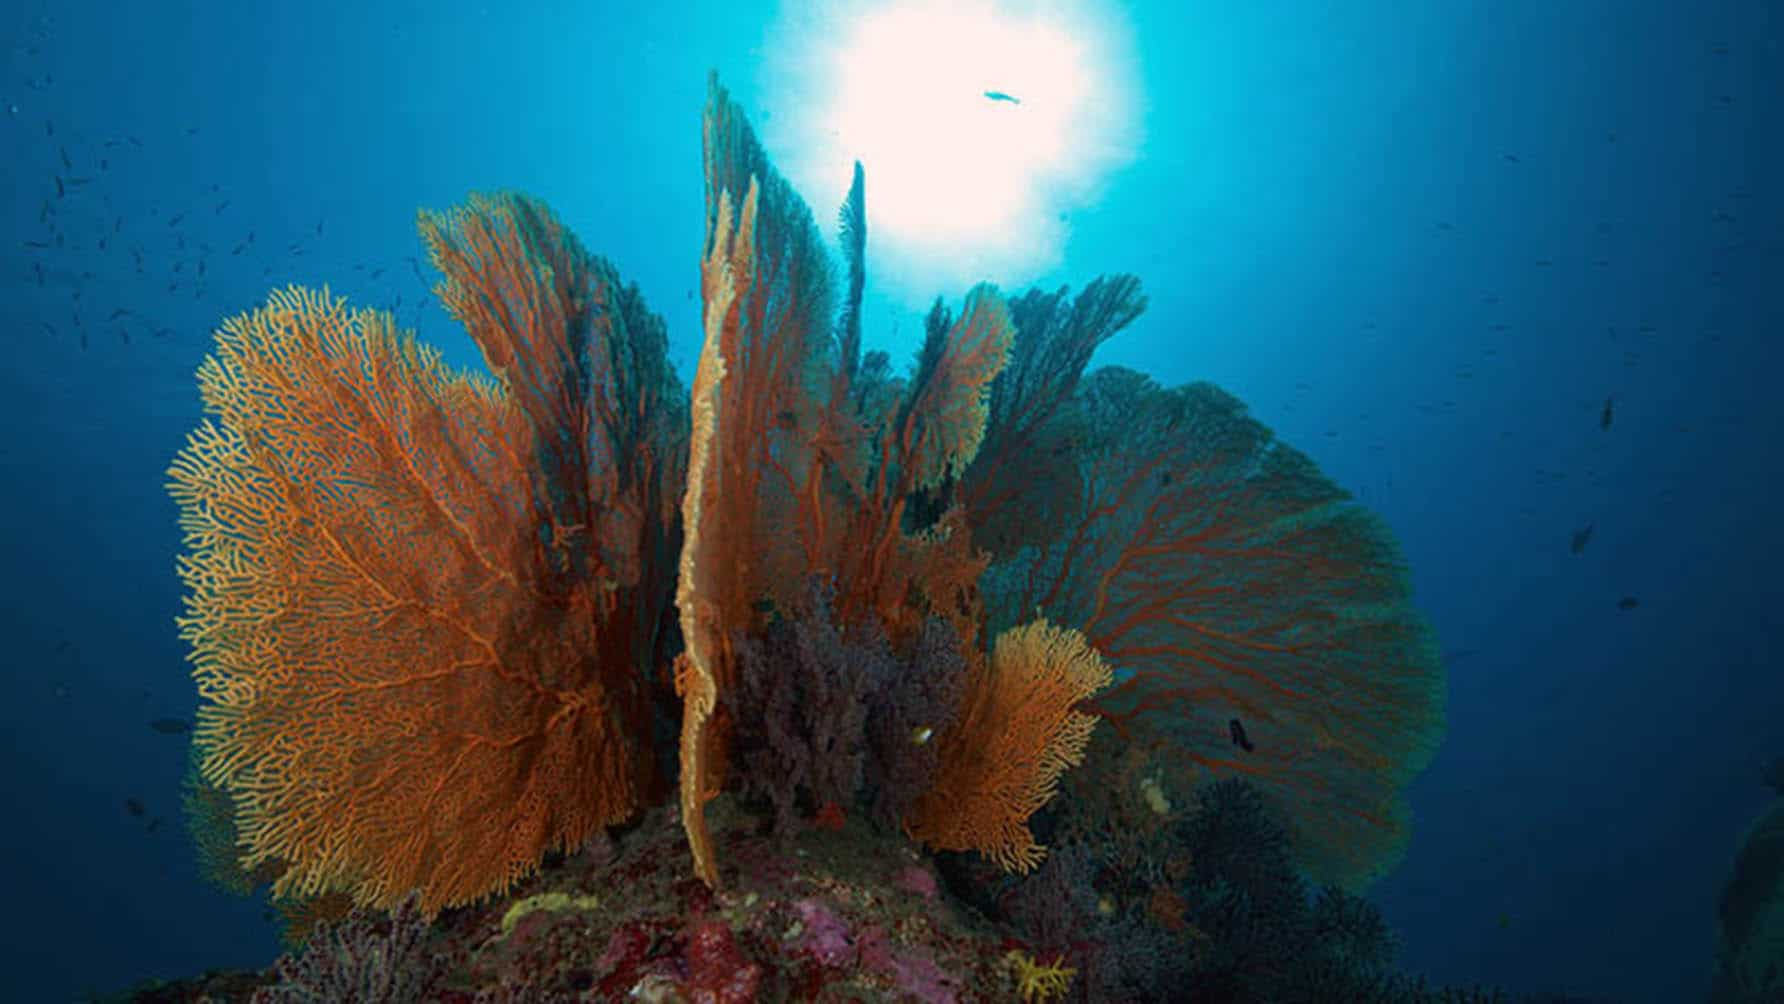 Koh Tachai Pinnacle - Beautiful Sea Fan